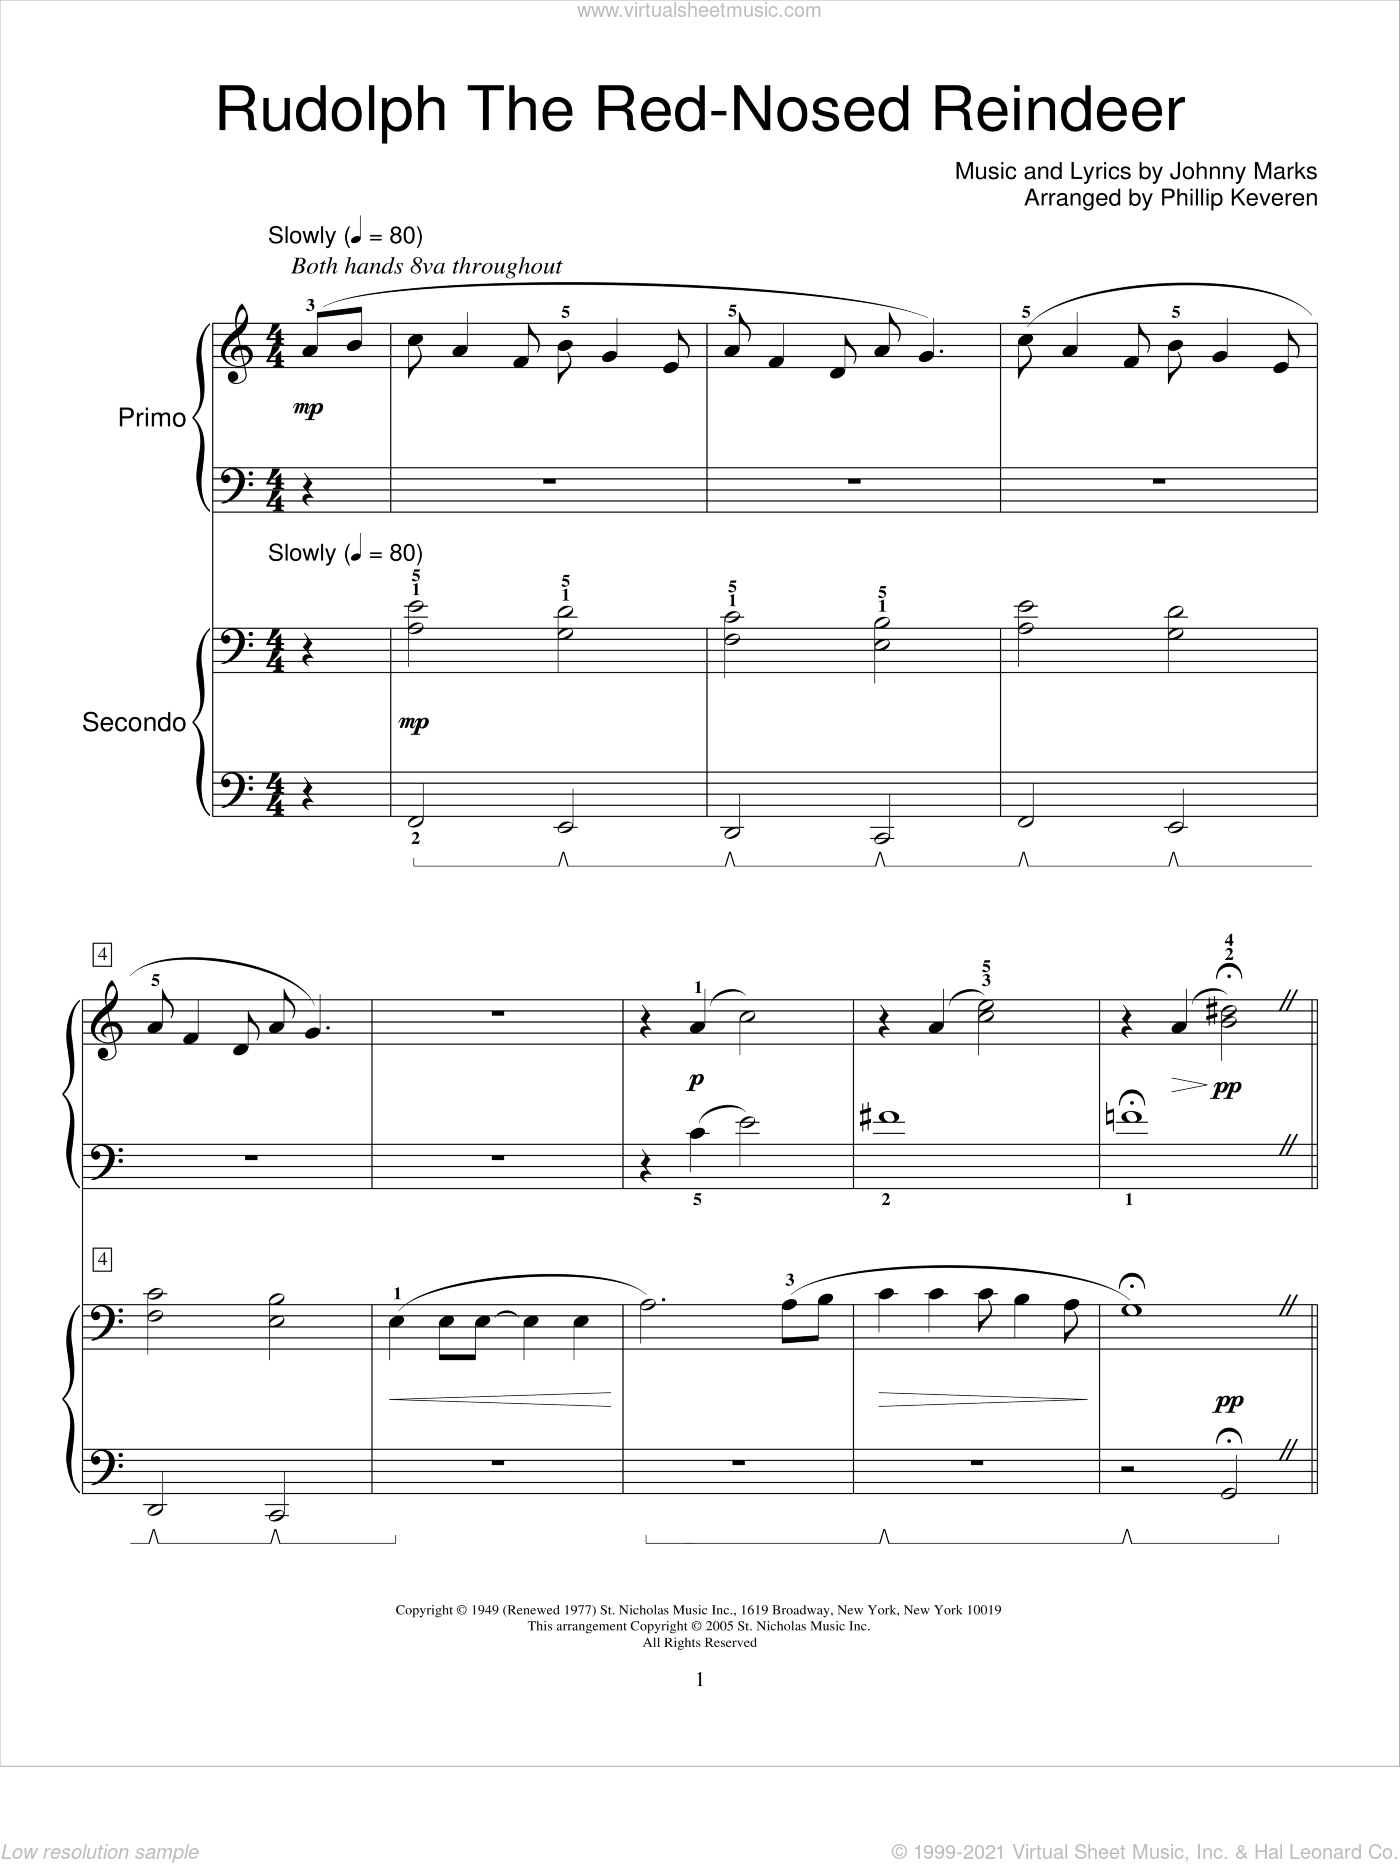 Rudolph The Red-Nosed Reindeer (arr. Eugenie Rocherolle) sheet music for piano four hands by Johnny Marks, Phillip Keveren and Miscellaneous, intermediate skill level